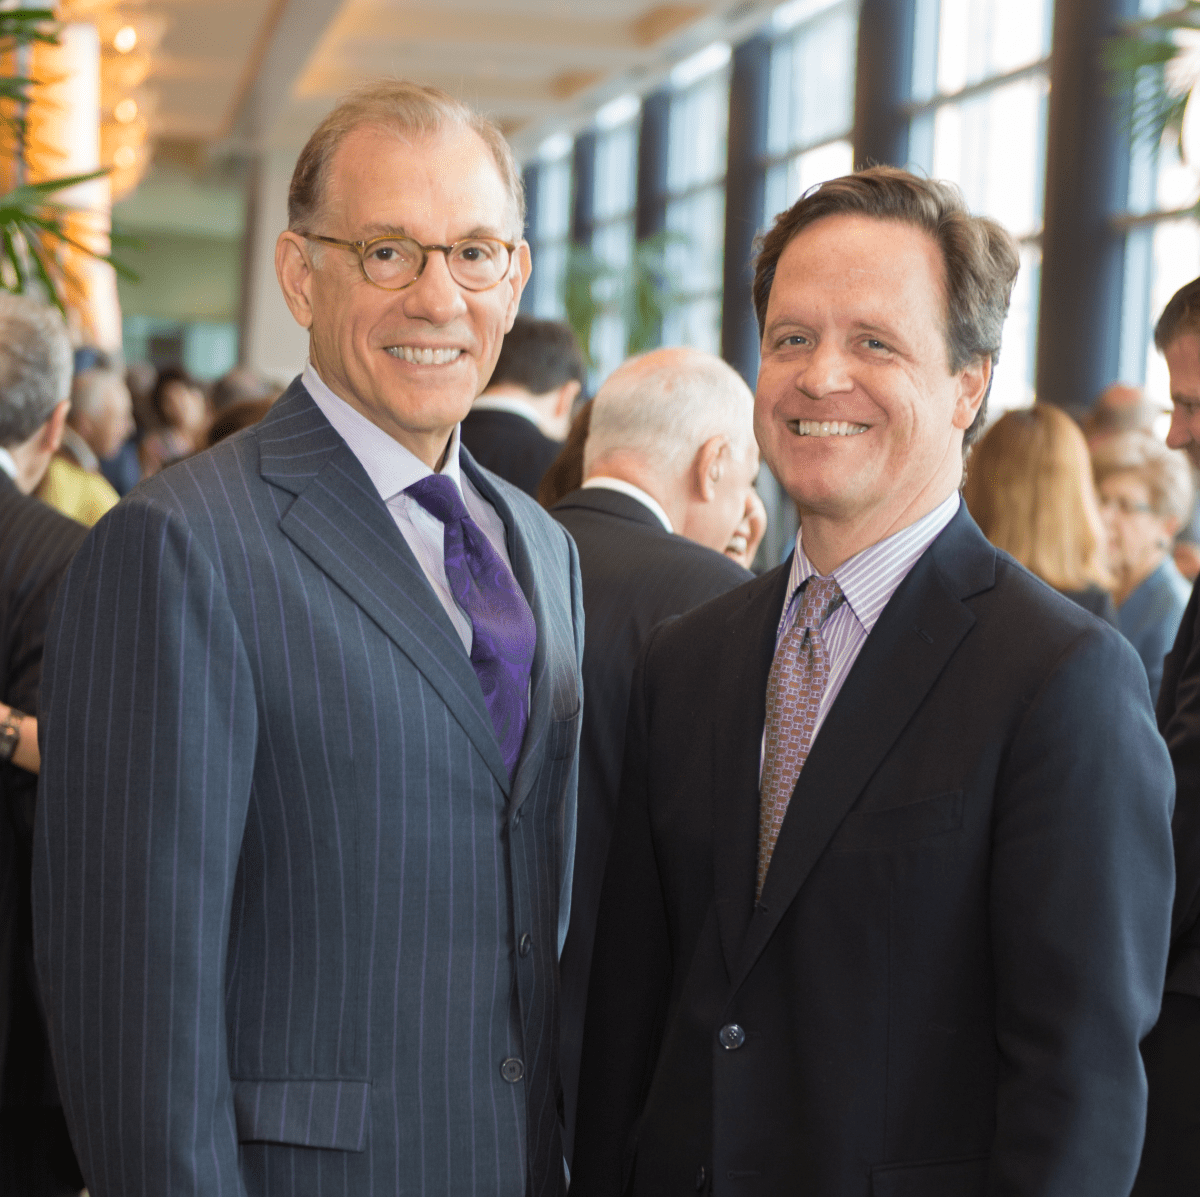 News, Shelby, Holocaust museum luncheon, Nov. 2015, Gary Tinterow, Christopher Gardner